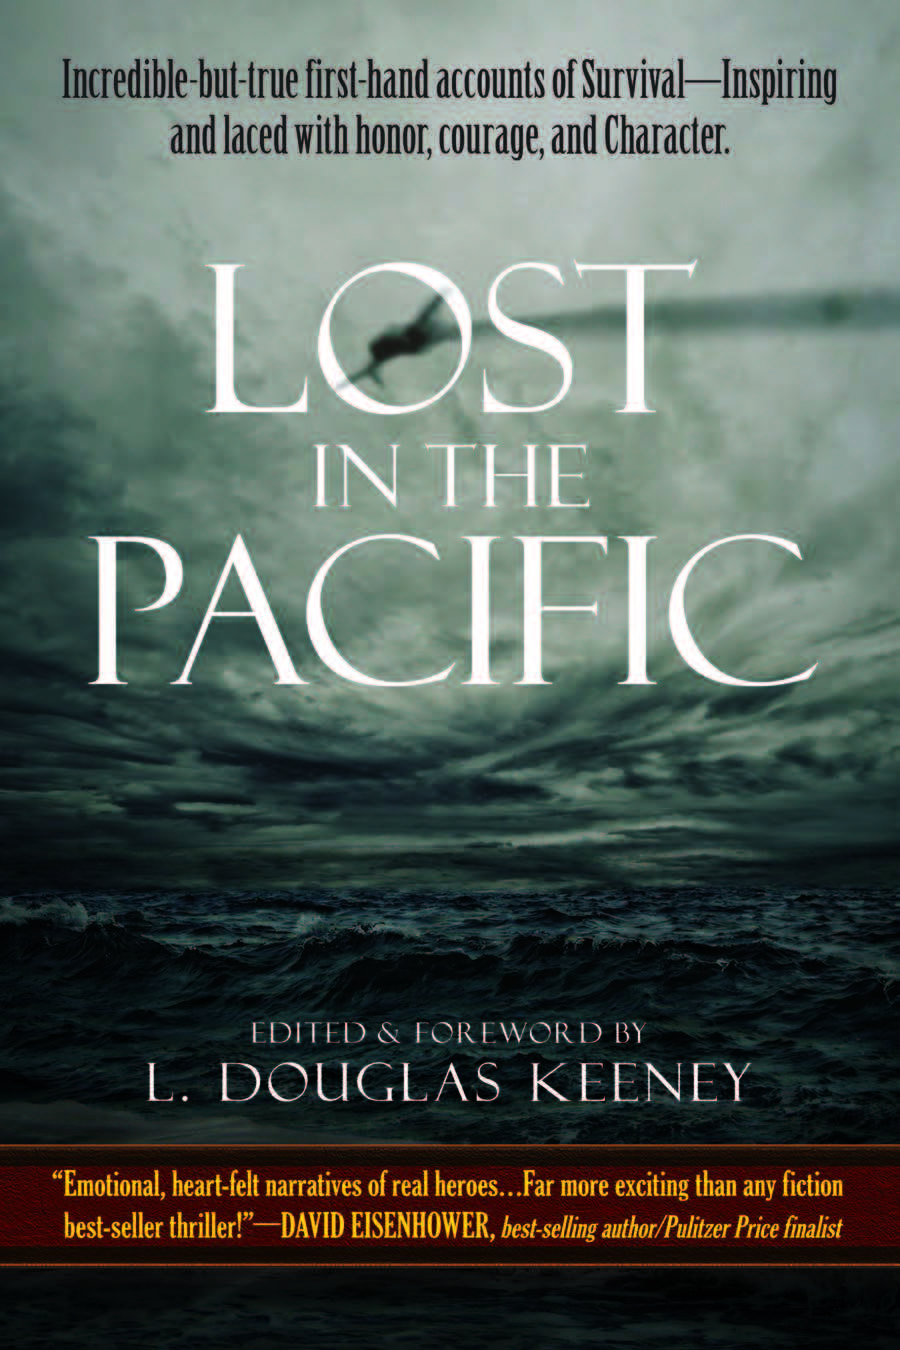 This keynote is based on the inspiring stories from the book  Lost in the Pacific.